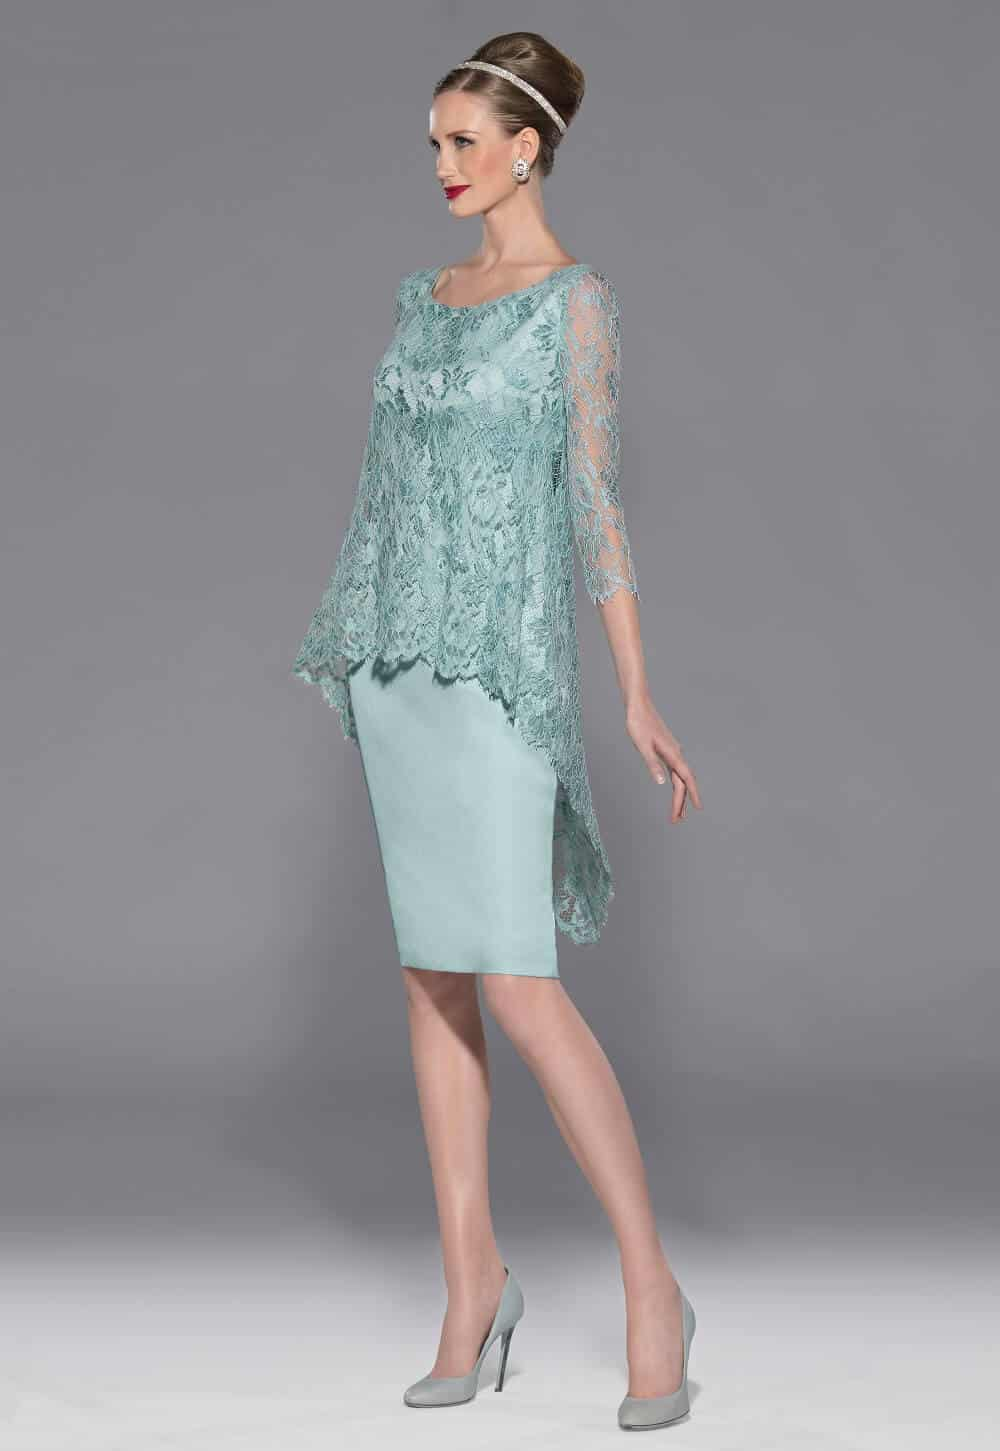 Knee length dress with lace overlay and lace sleeves. 3422-V-4 (000748)